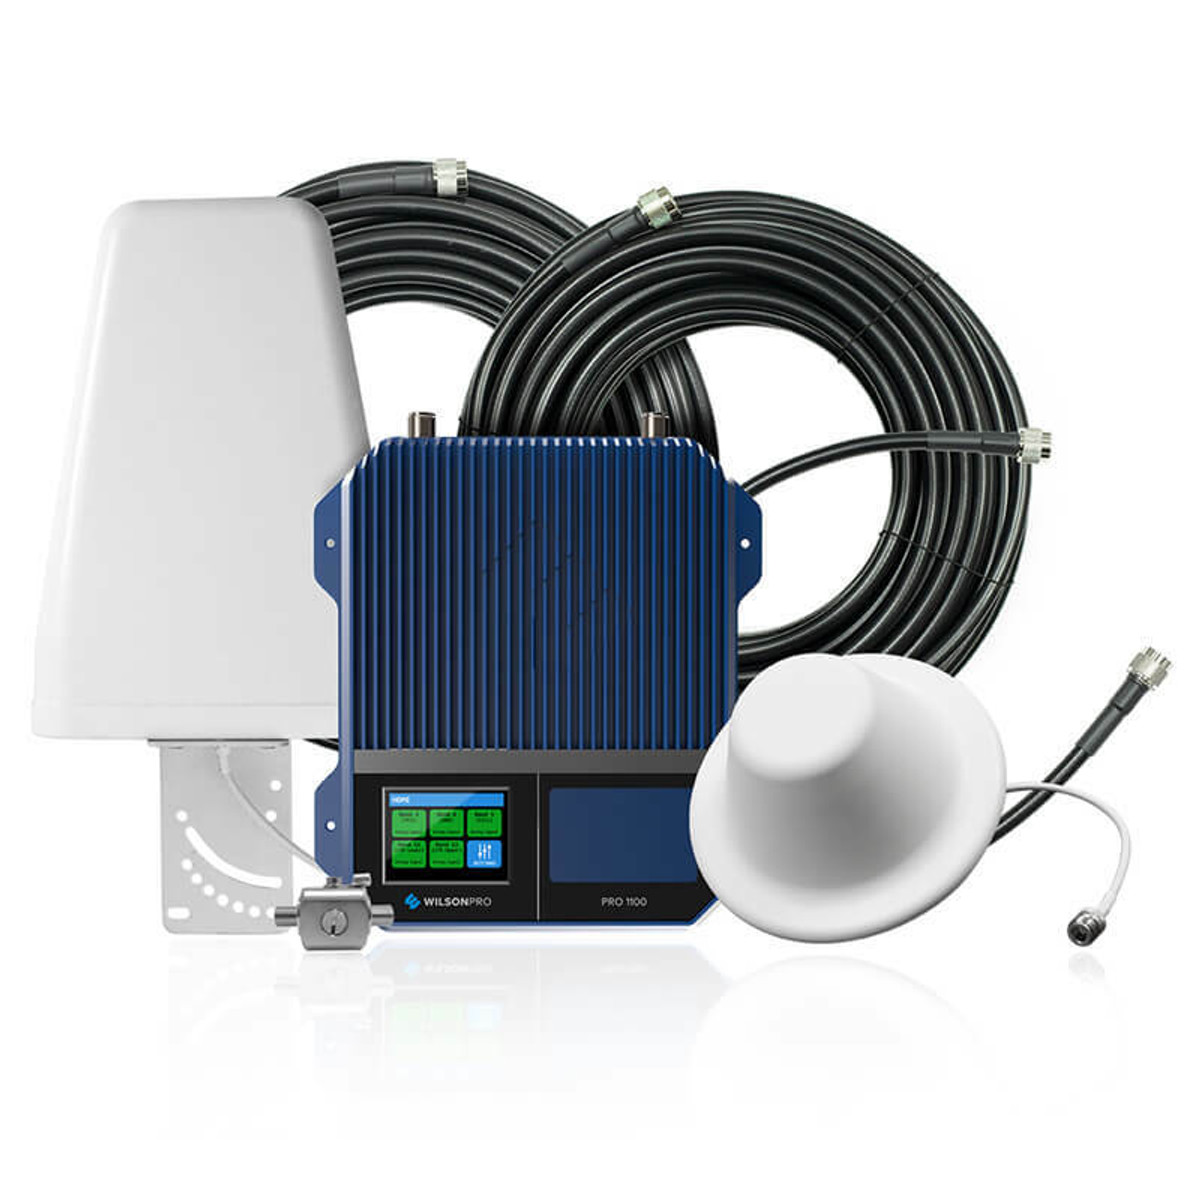 Wilson Pro Wilson Pro 1100 75 Ohm Commercial Signal Booster Kit or 461147